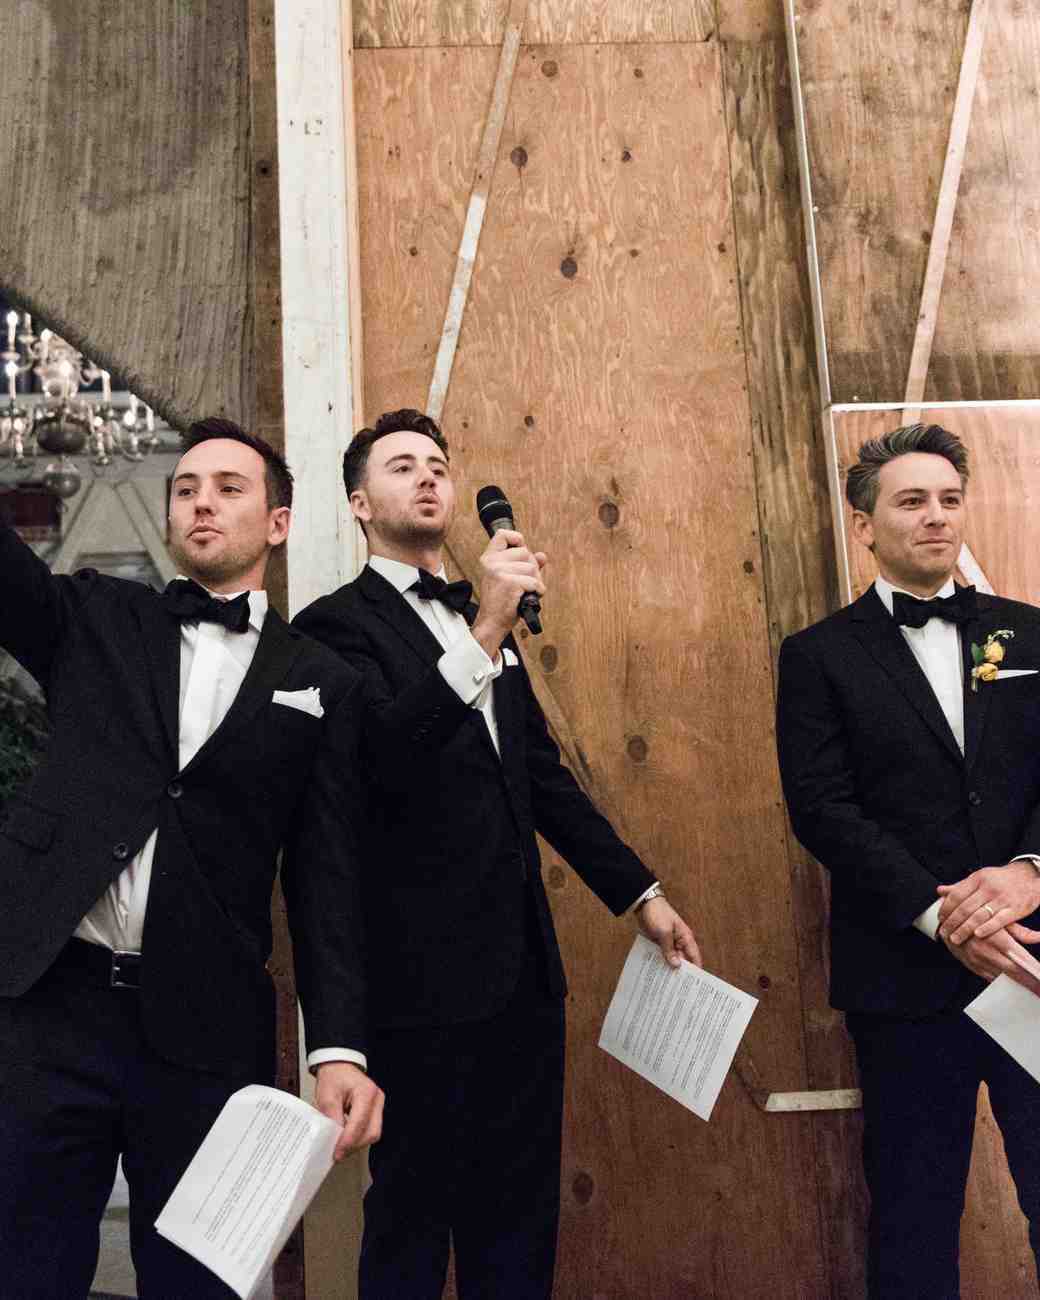 wedding three groomsman toast